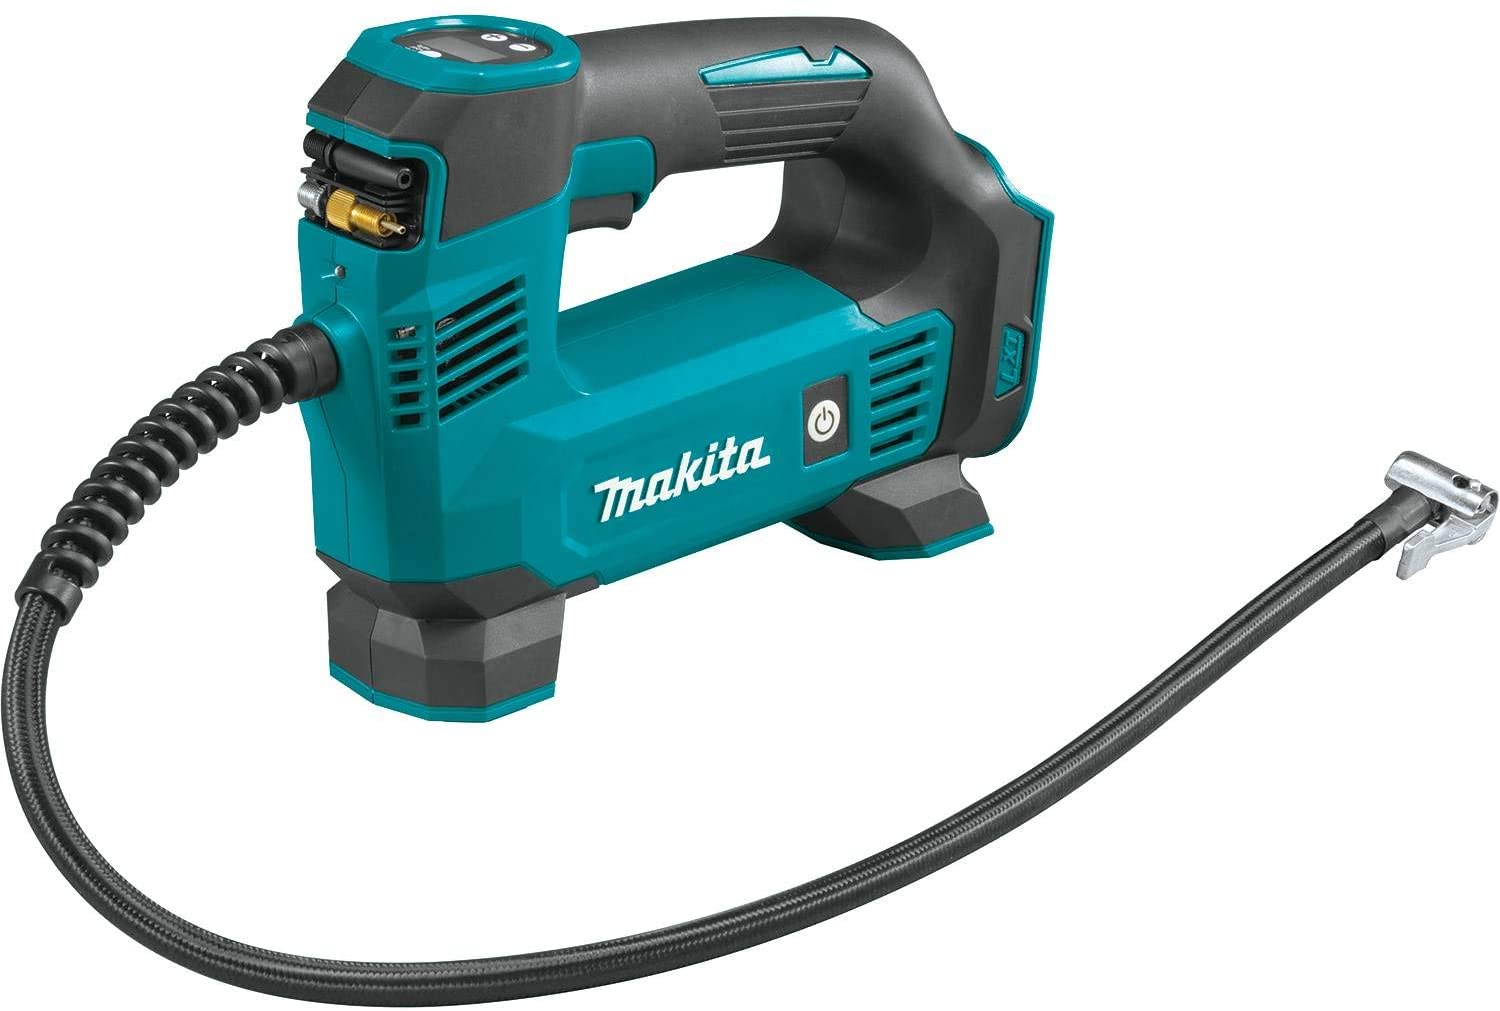 Makita 18V Tire Inflator Review | Lawn and Garden Site